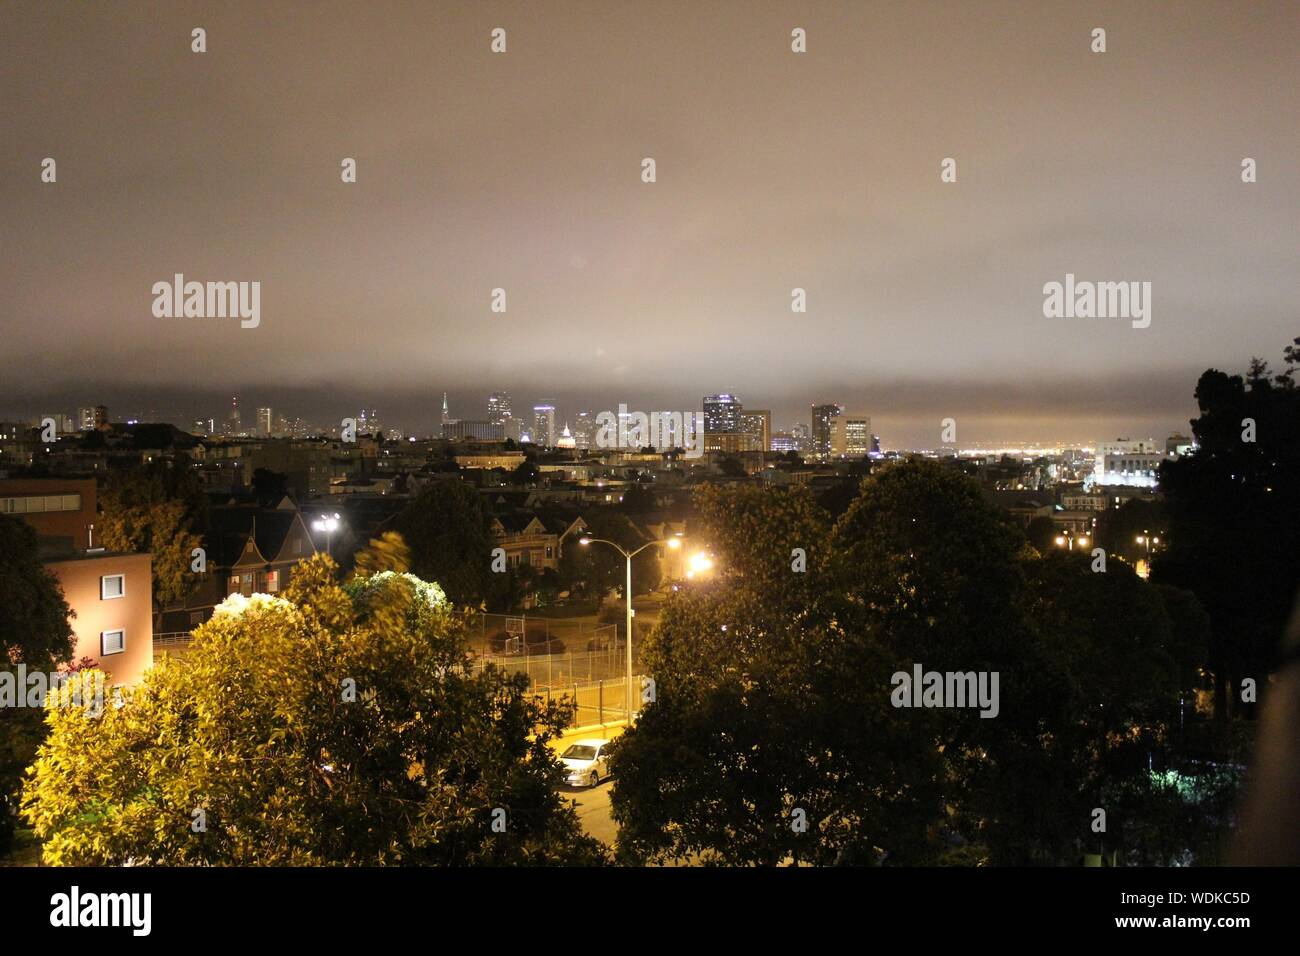 Trees And Buildings In Illuminated City During Night Stock Photo